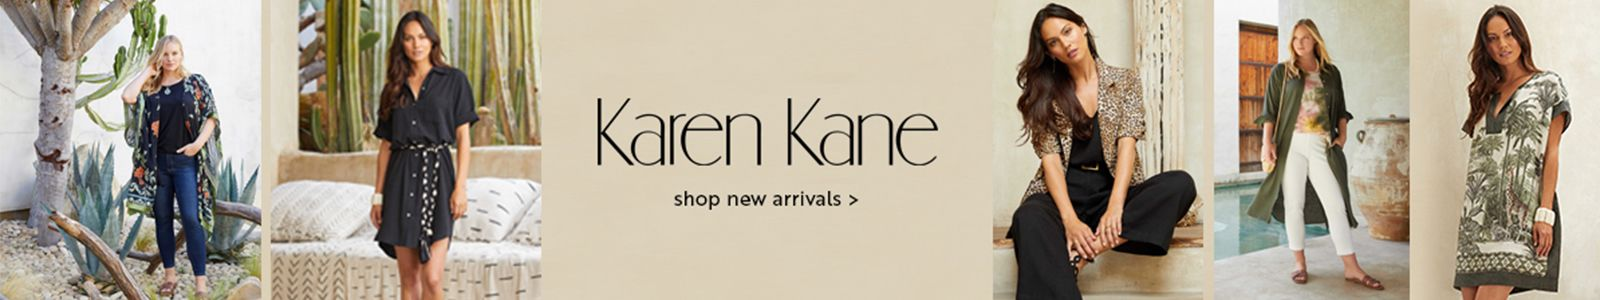 Karen Kane, Shop new arrivals